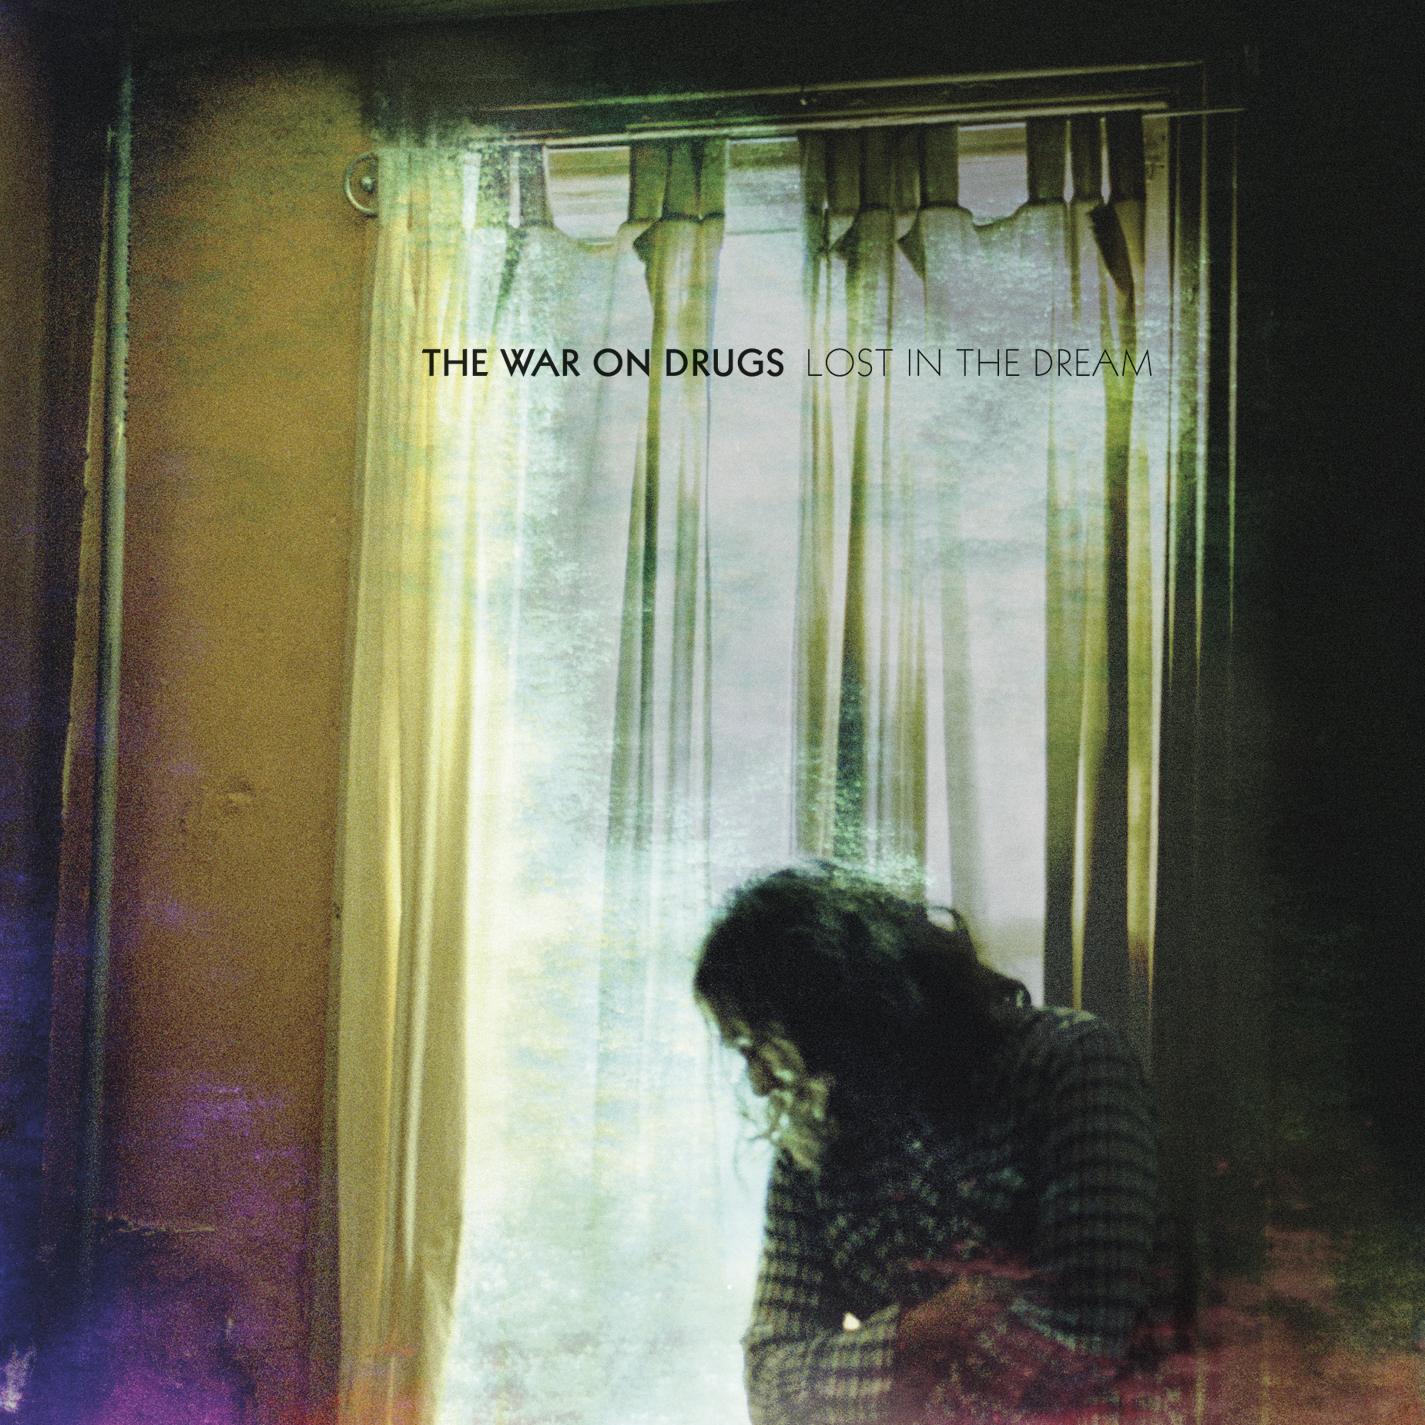 https://i2.wp.com/cdn2.thelineofbestfit.com/media/2014/war_on_drugs_album_cover.jpg